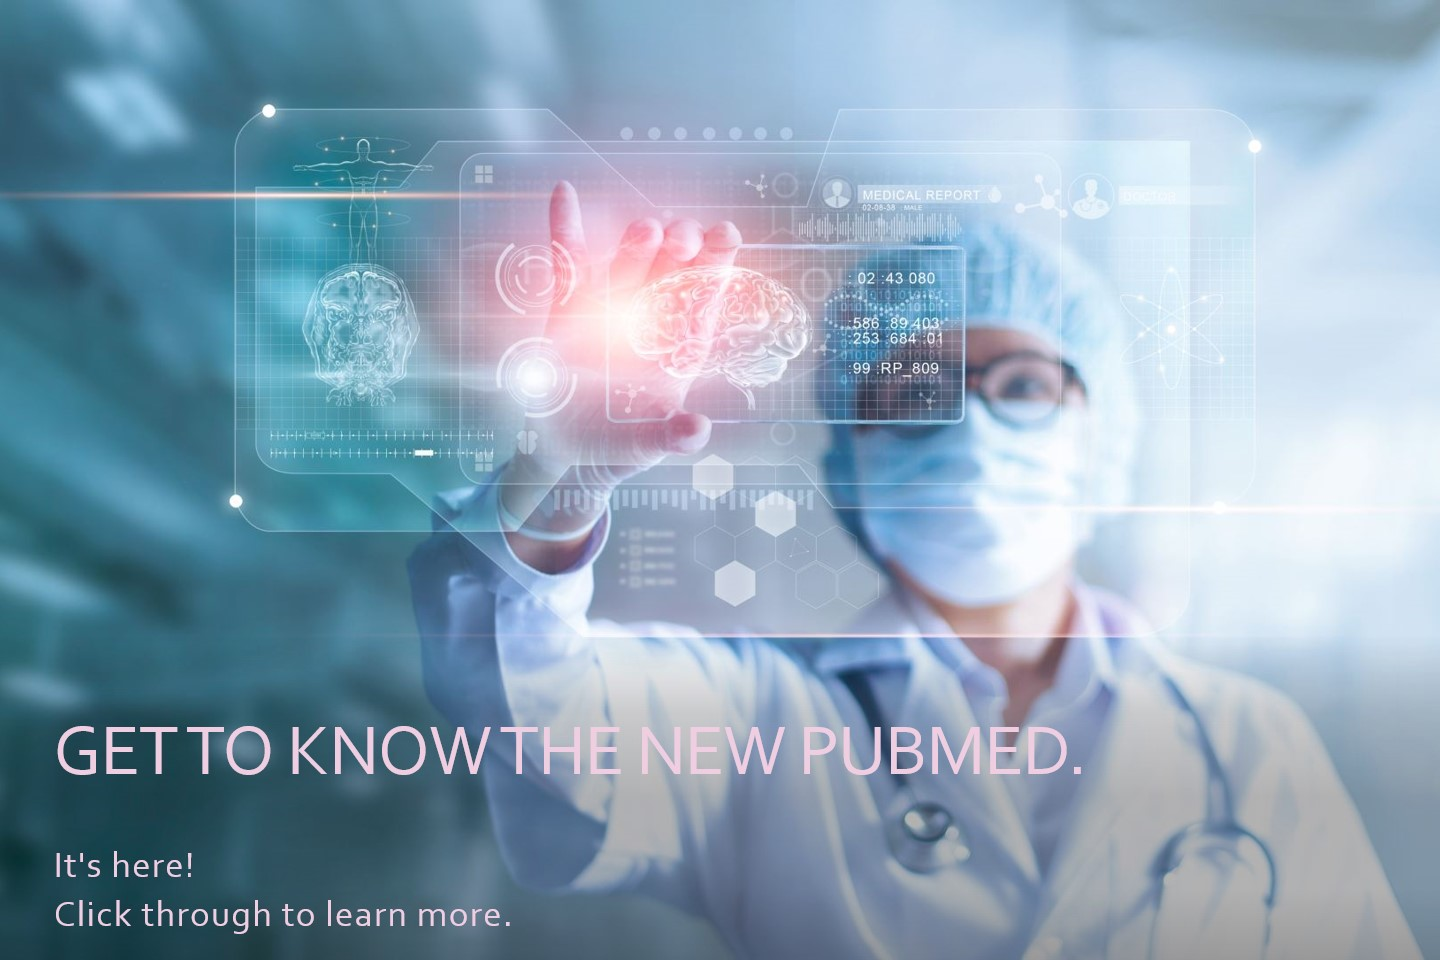 New pubmed information